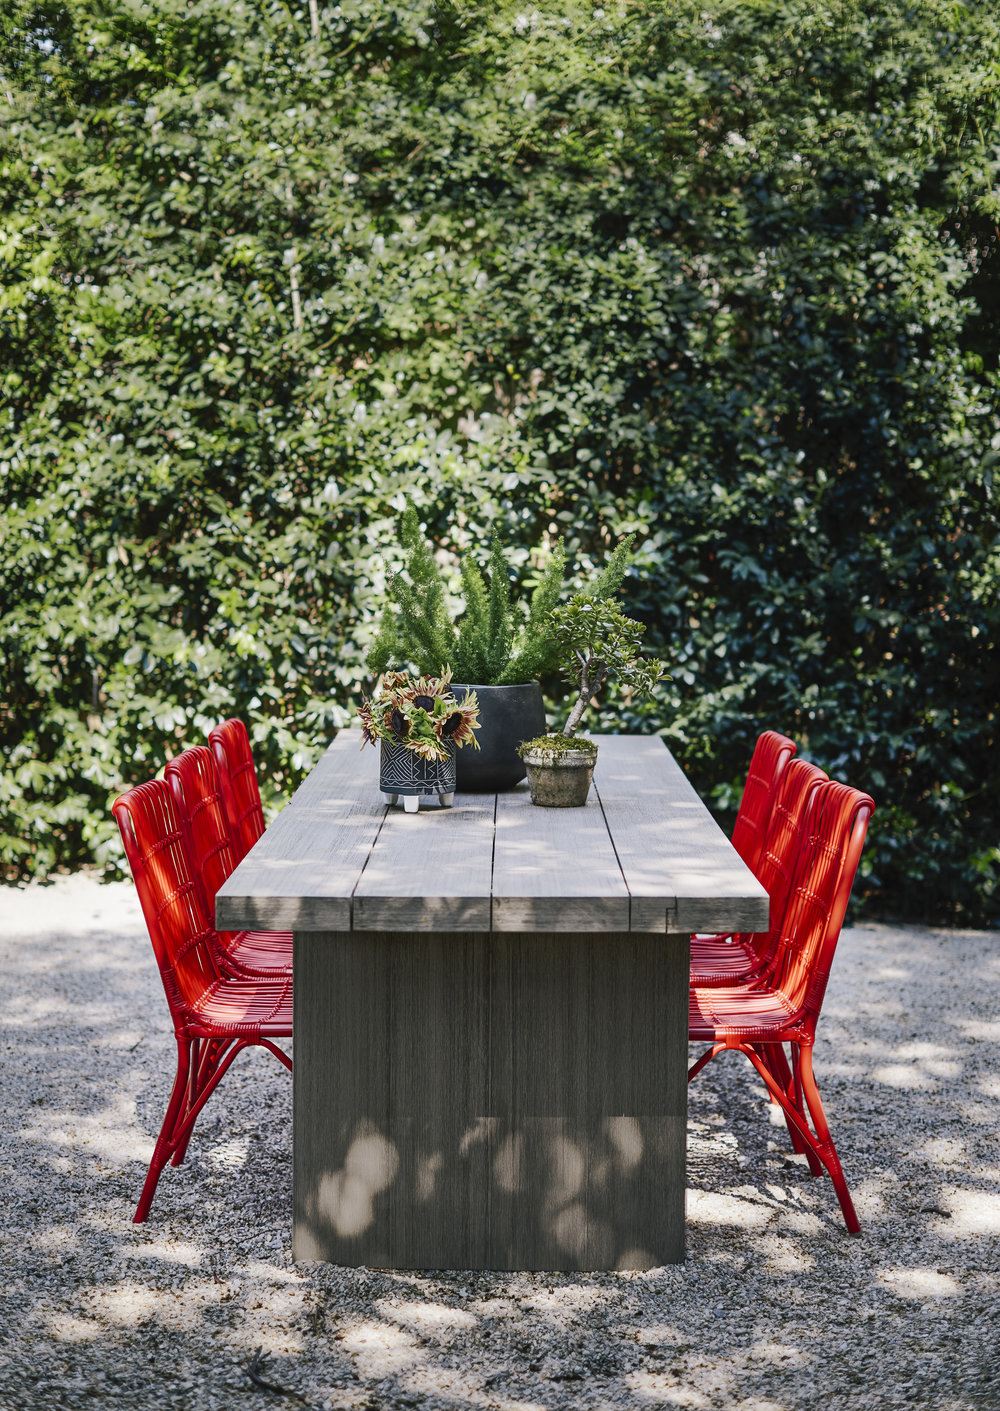 DHOME_3212GREENBRIER_OUTDOORTABLE.jpg